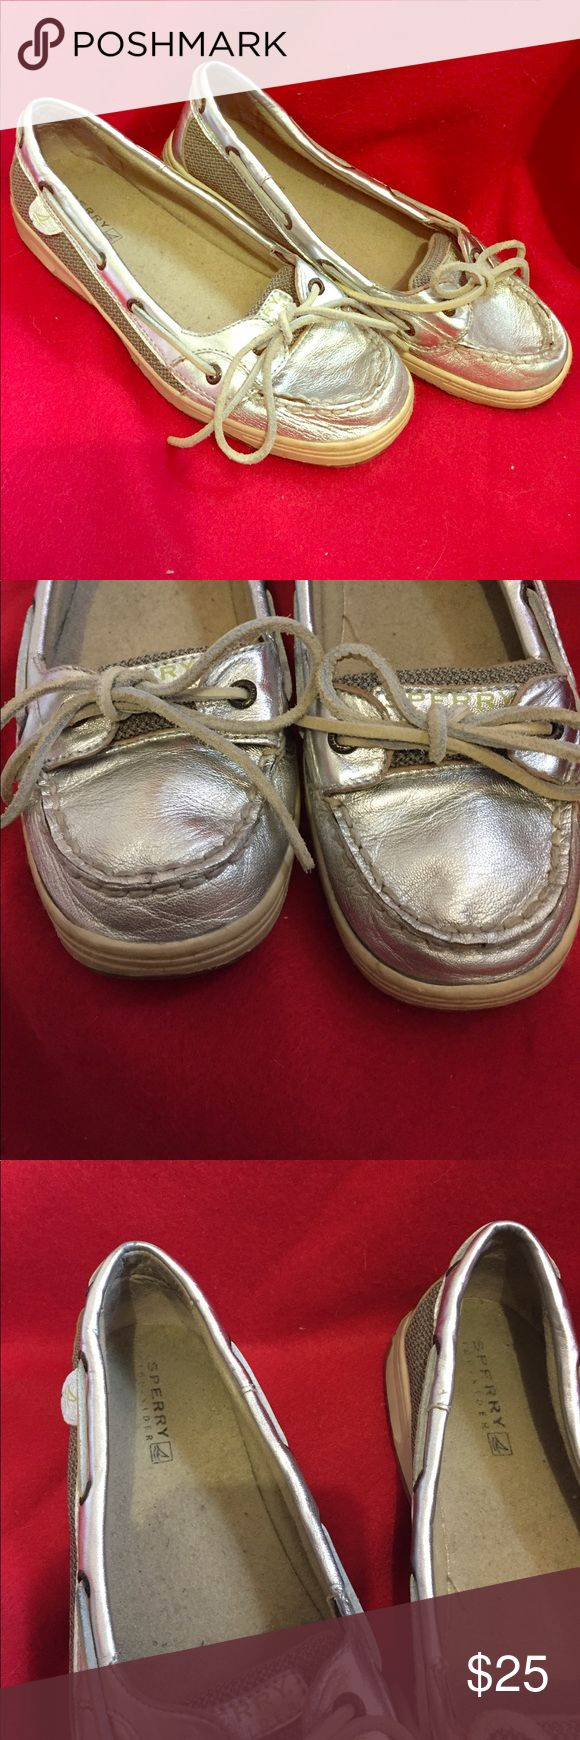 💥SALE ENDING SOON💥Sperry Top-Sider These shoes are extremely comfortable. Size 6. Make an offer. Sperry Shoes